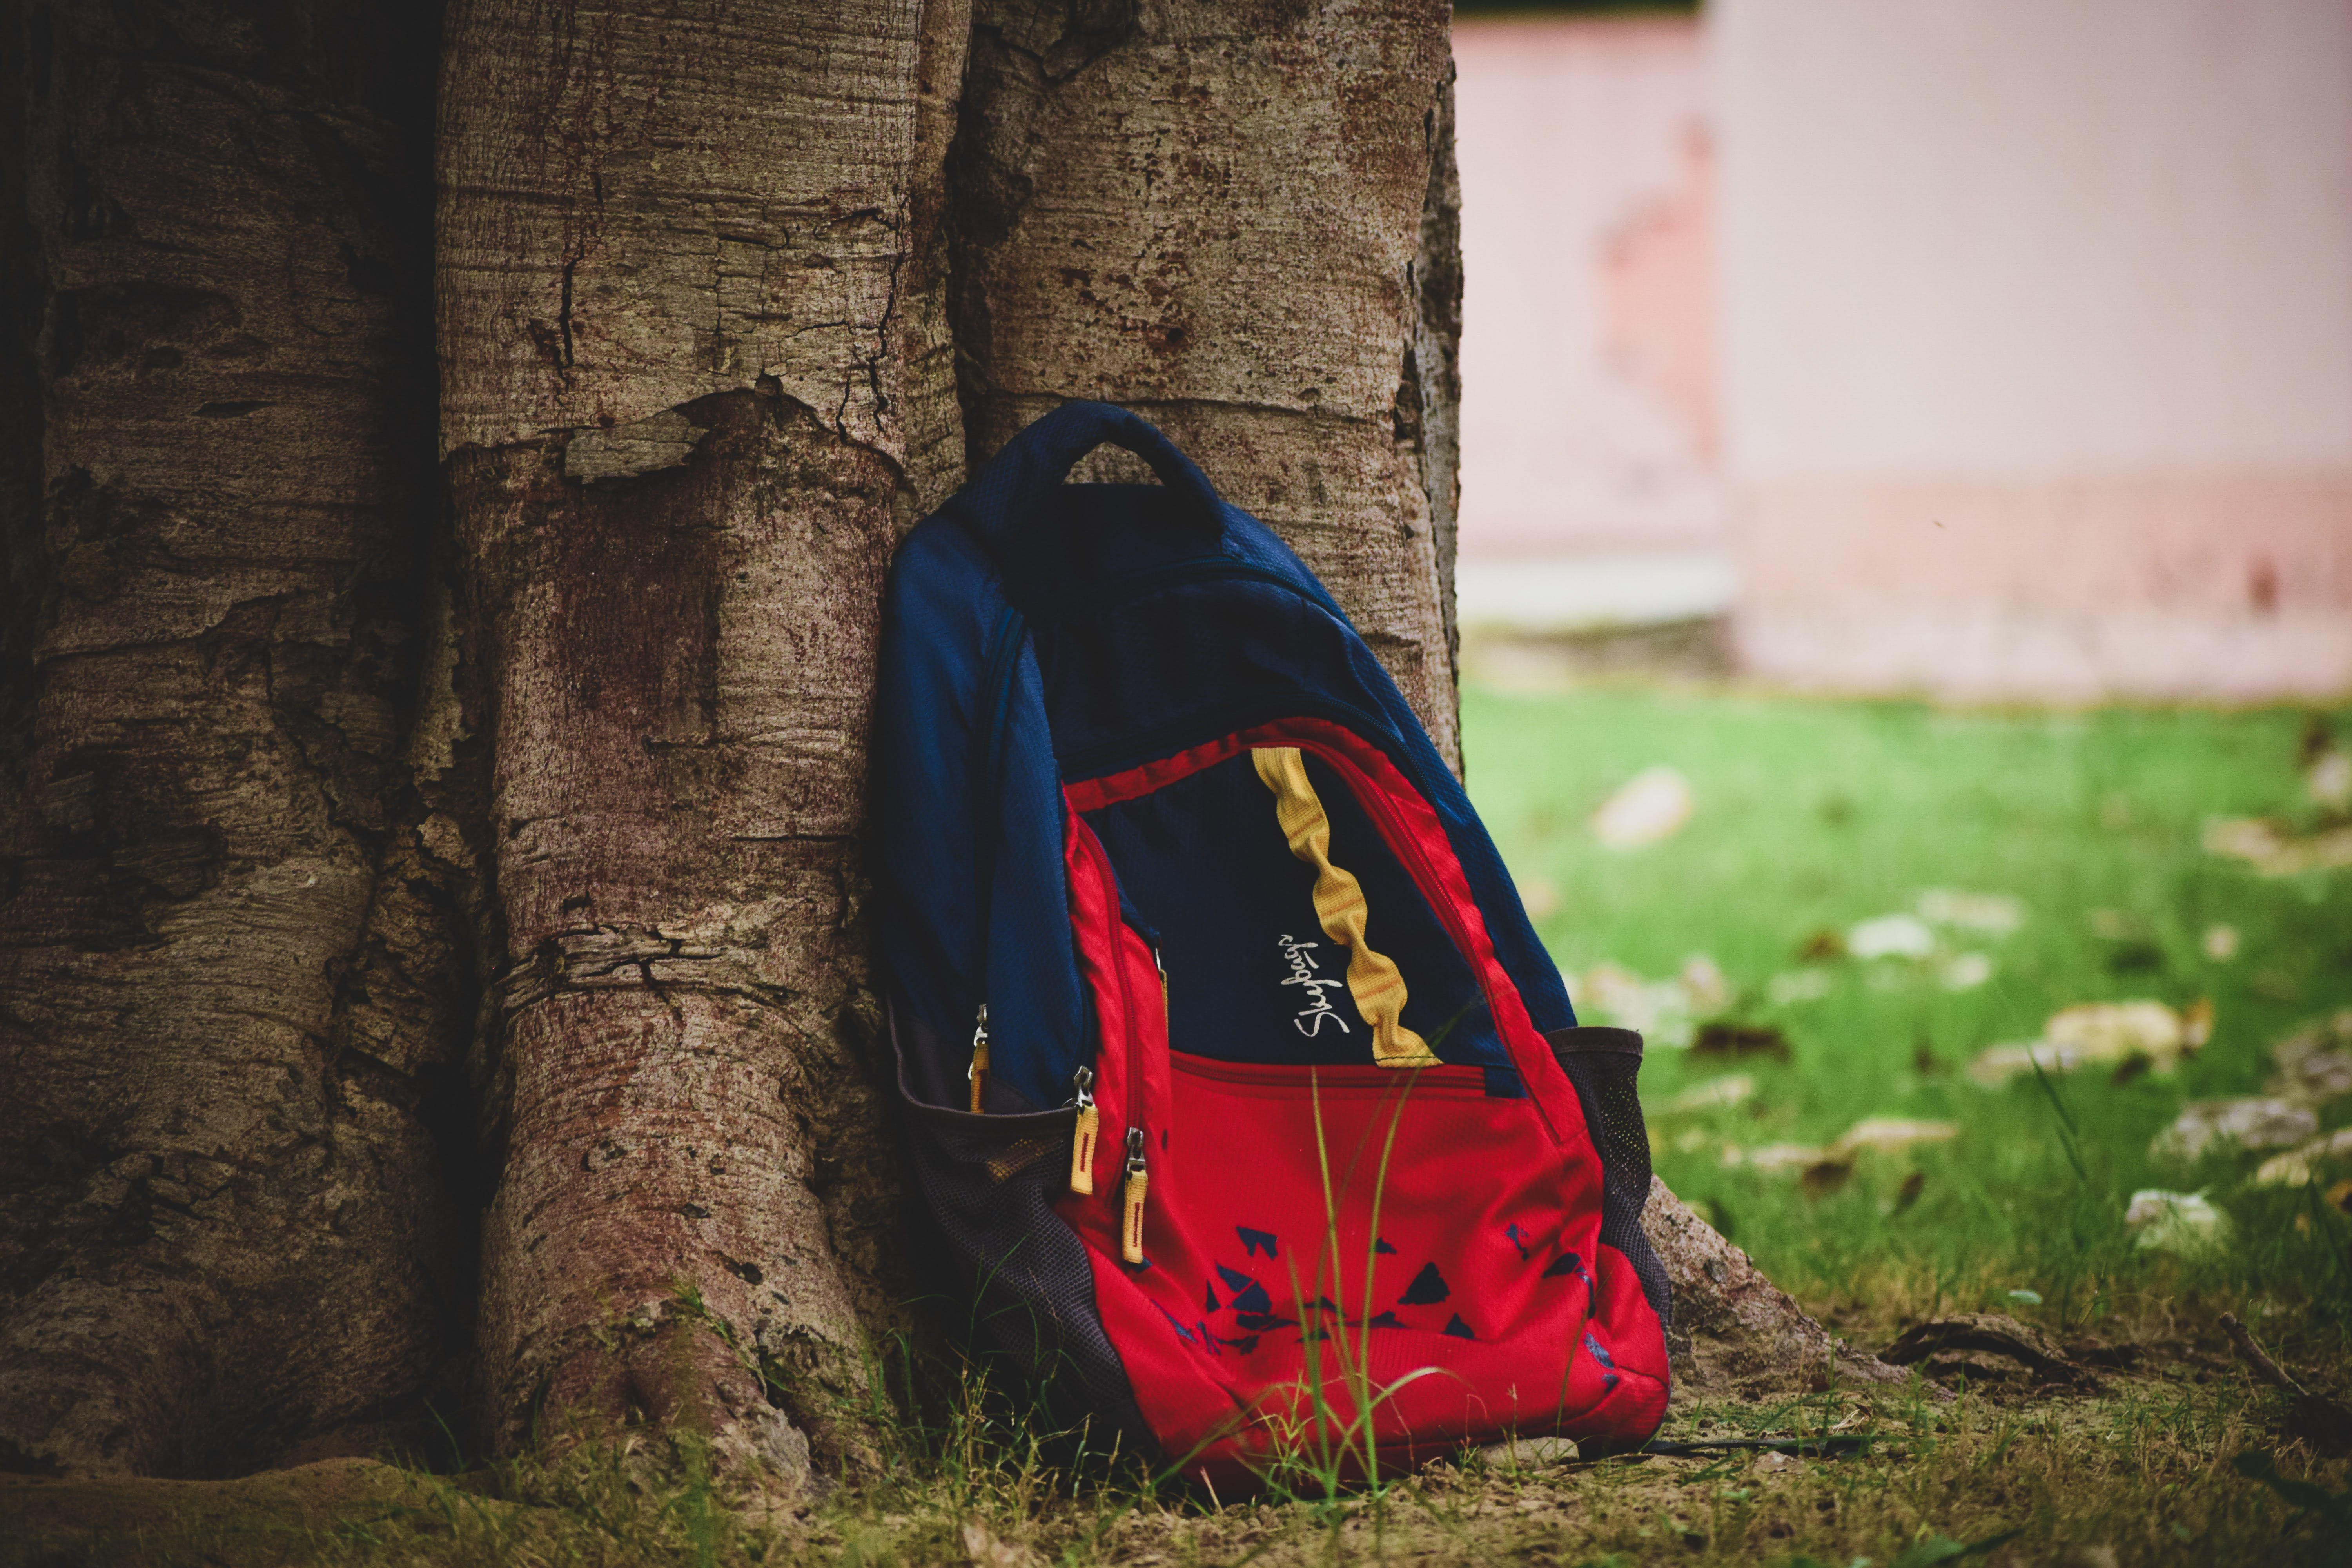 Close-Up Photography of Backpack on Tree